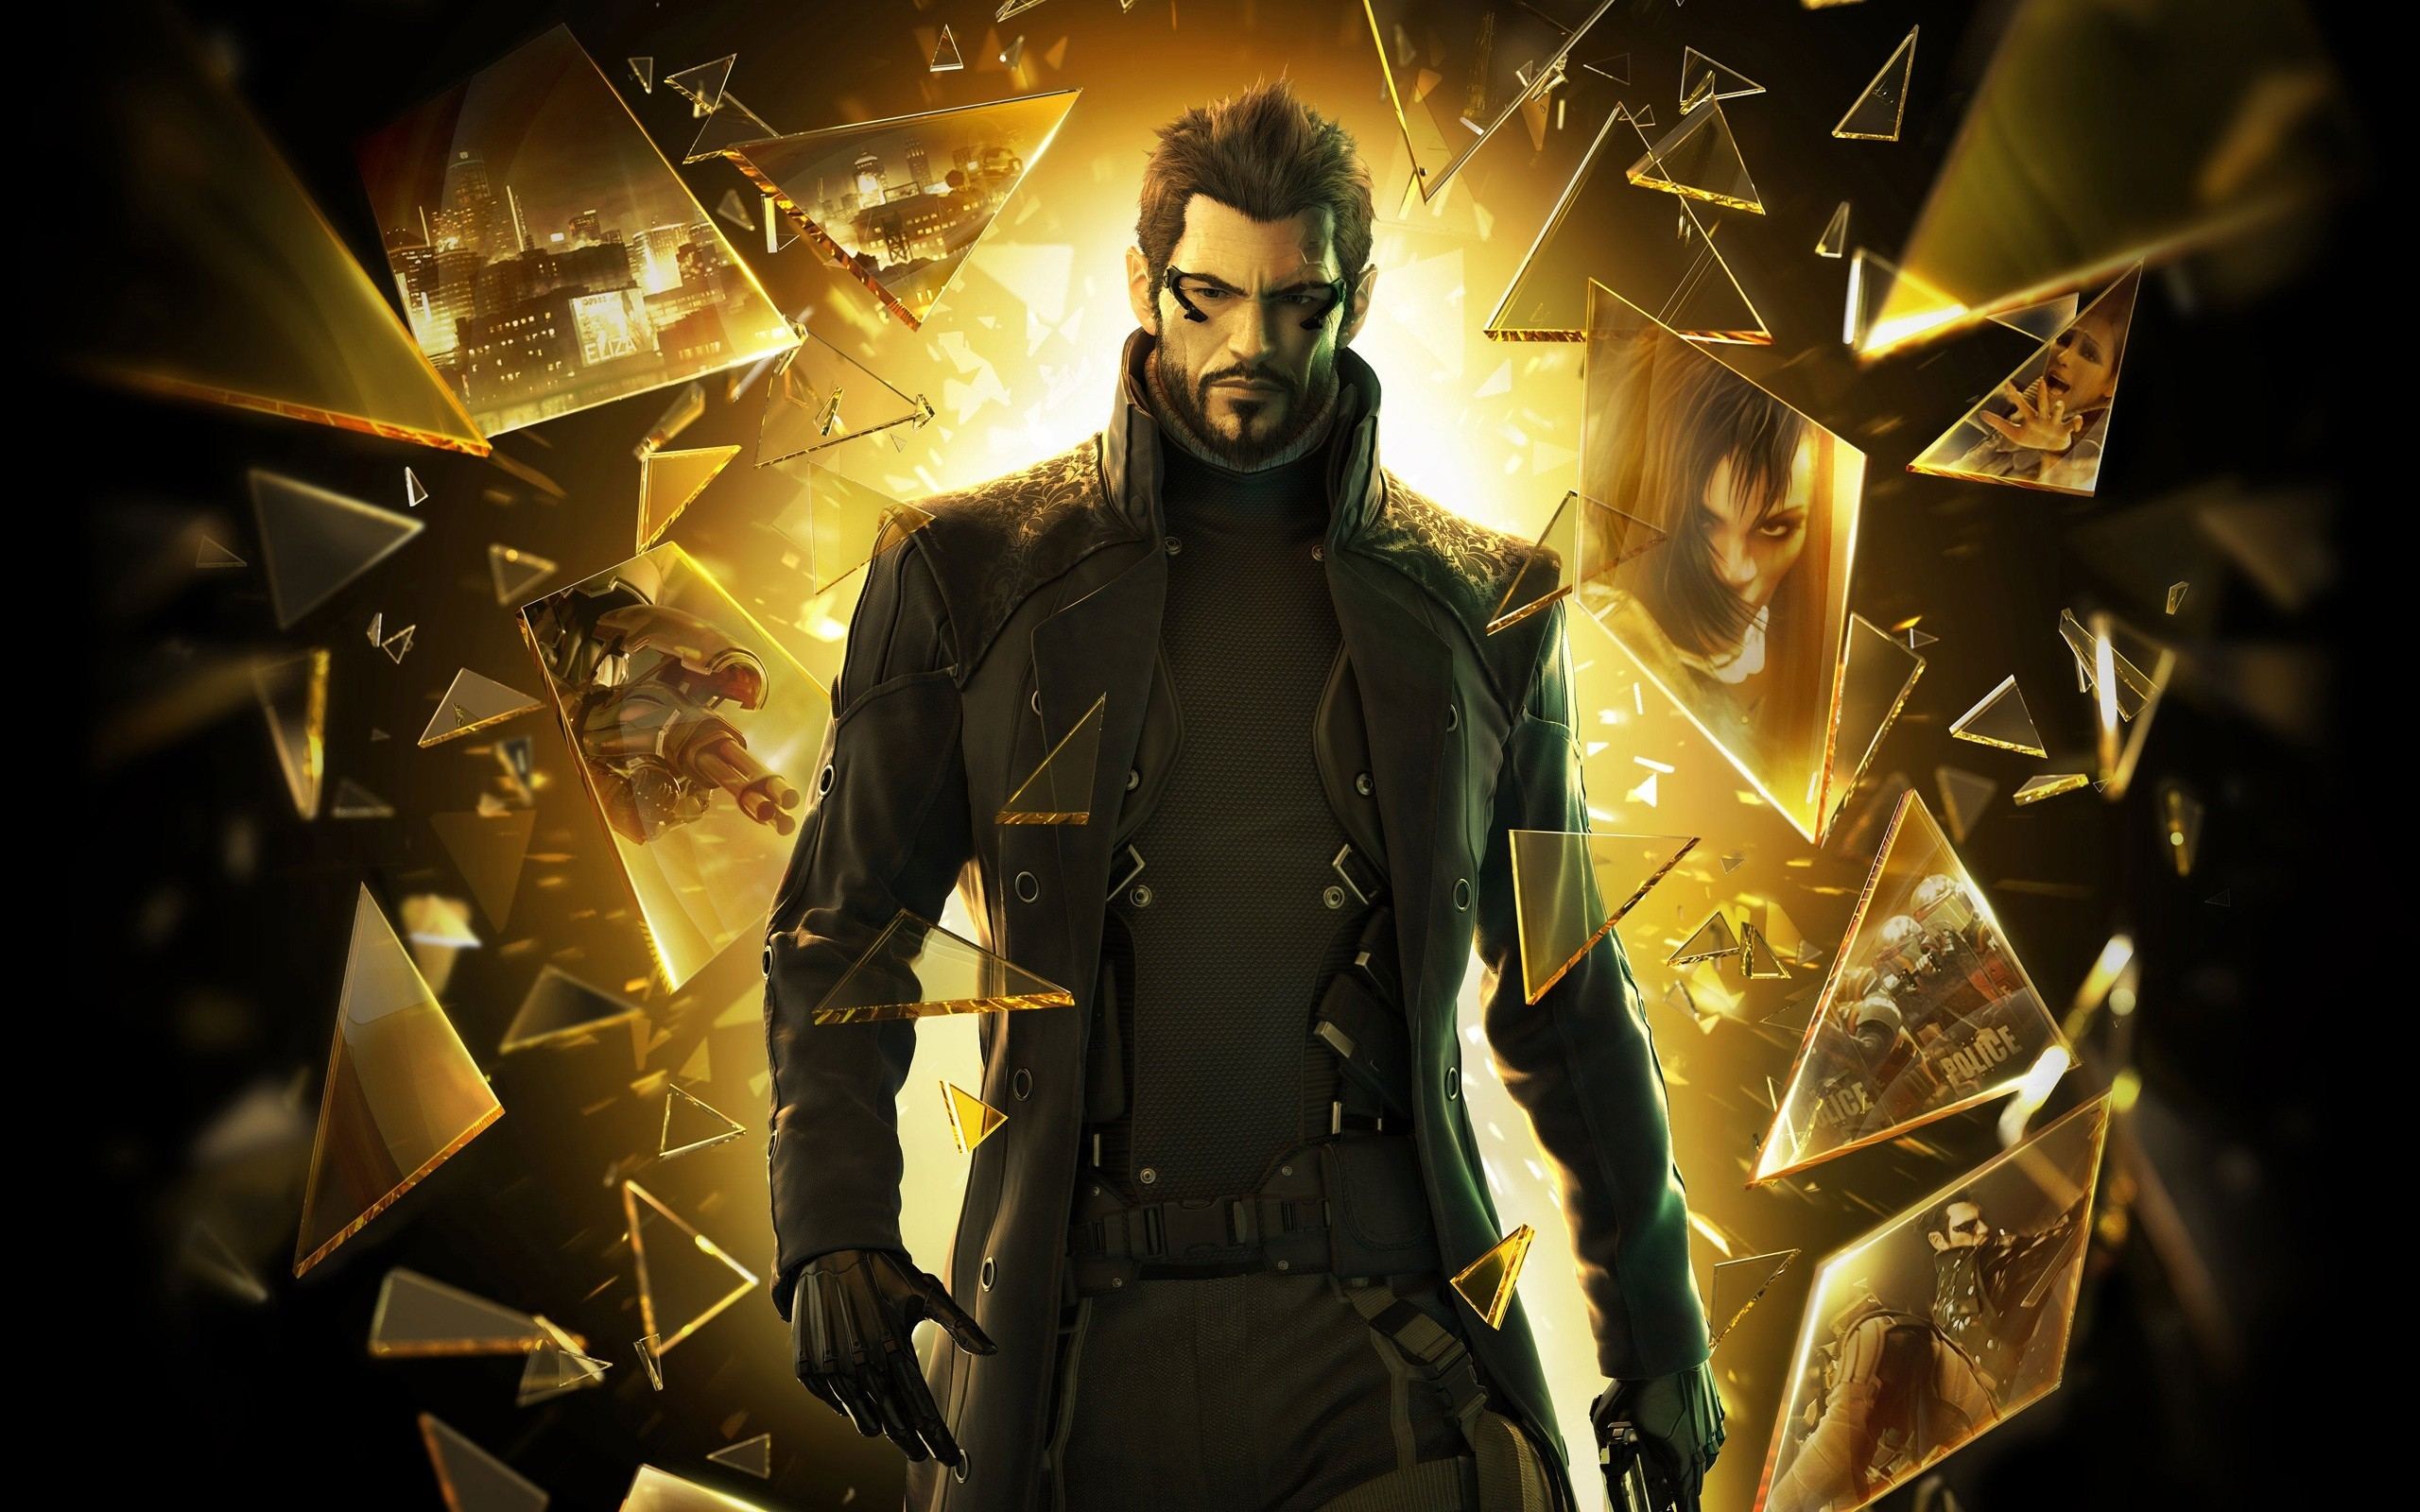 deus ex deus ex human revolution video games HD Wallpaper